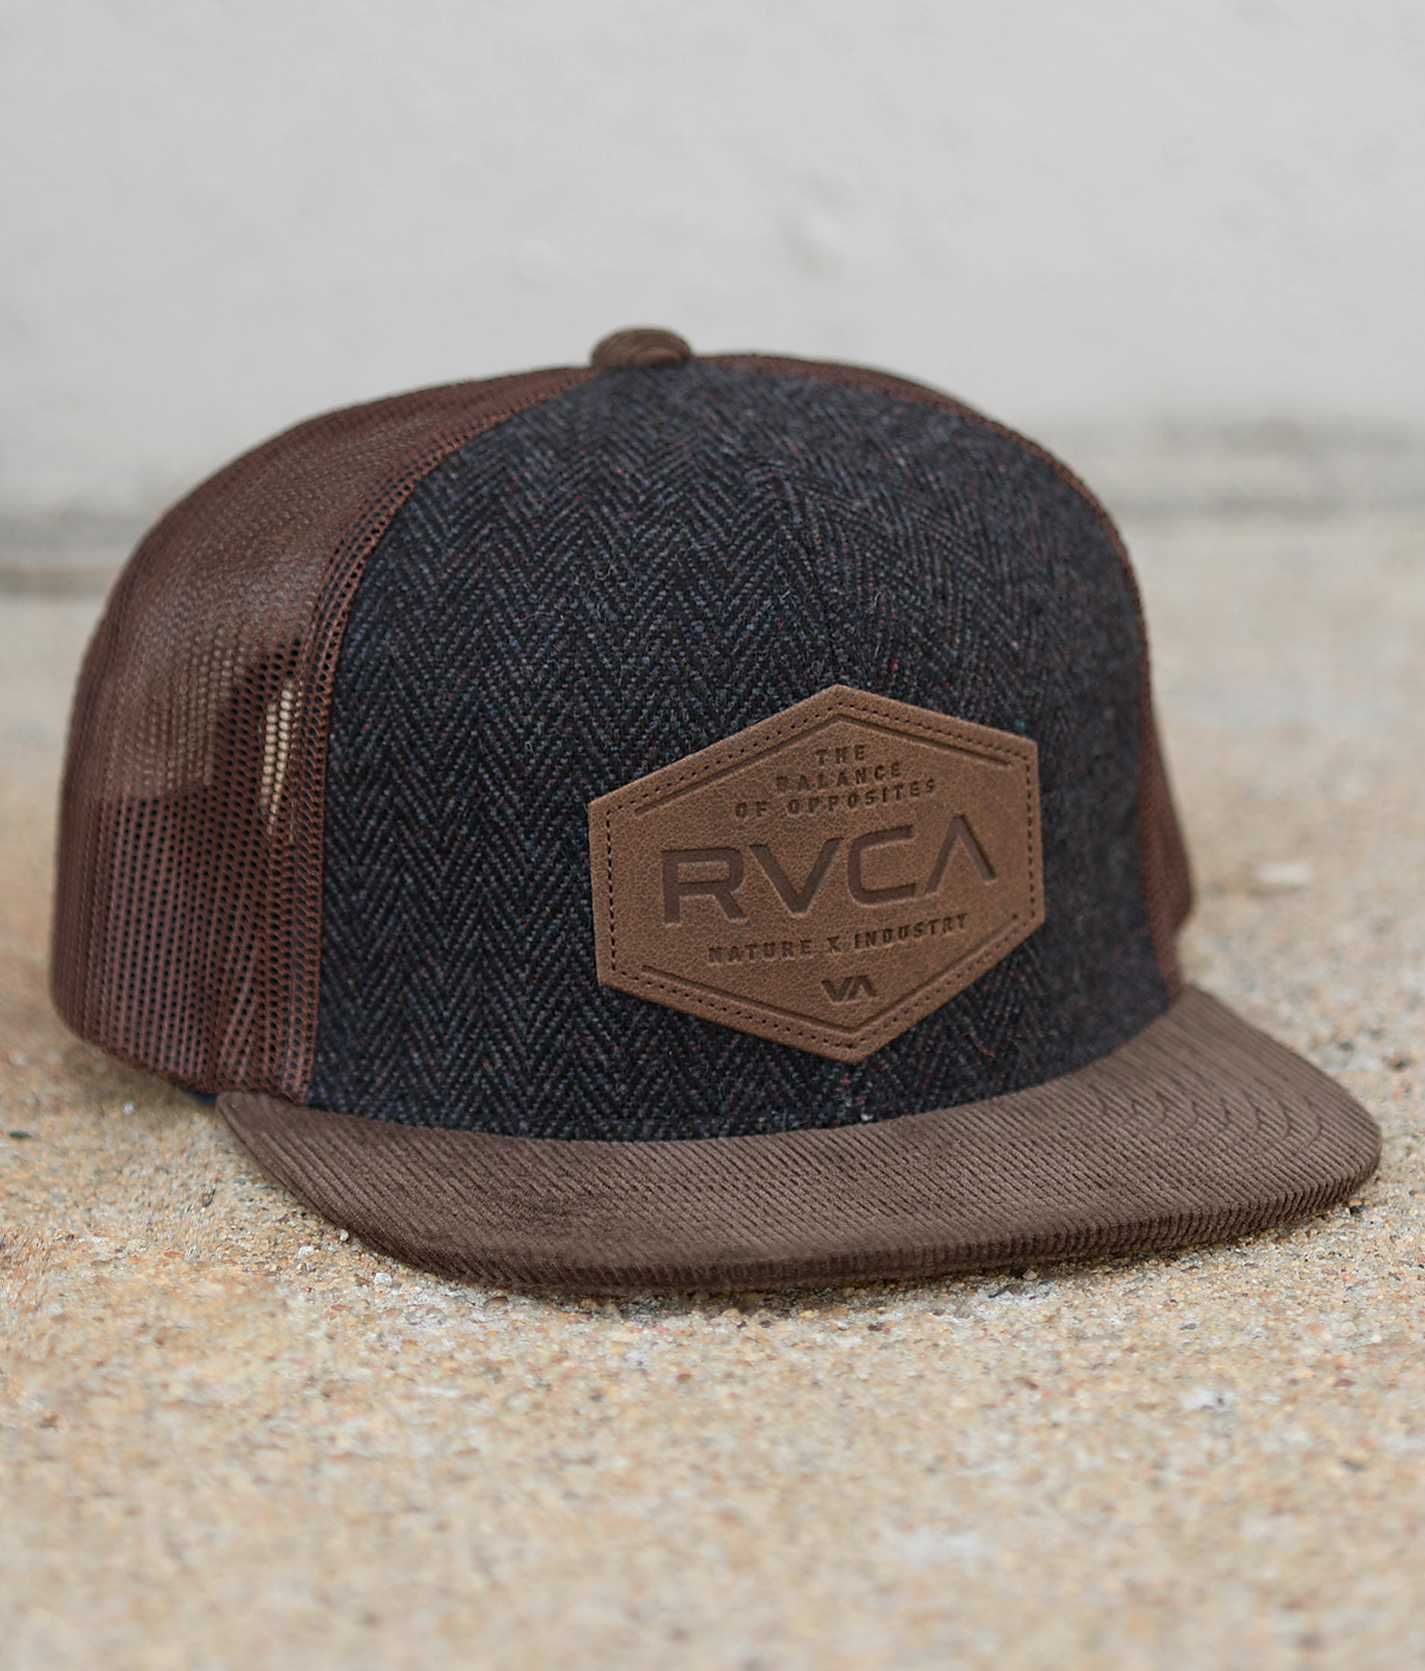 3fbe63c6 RVCA Sixth Panel Trucker Hat - Men's Hats | Buckle | Stuff I Like in ...